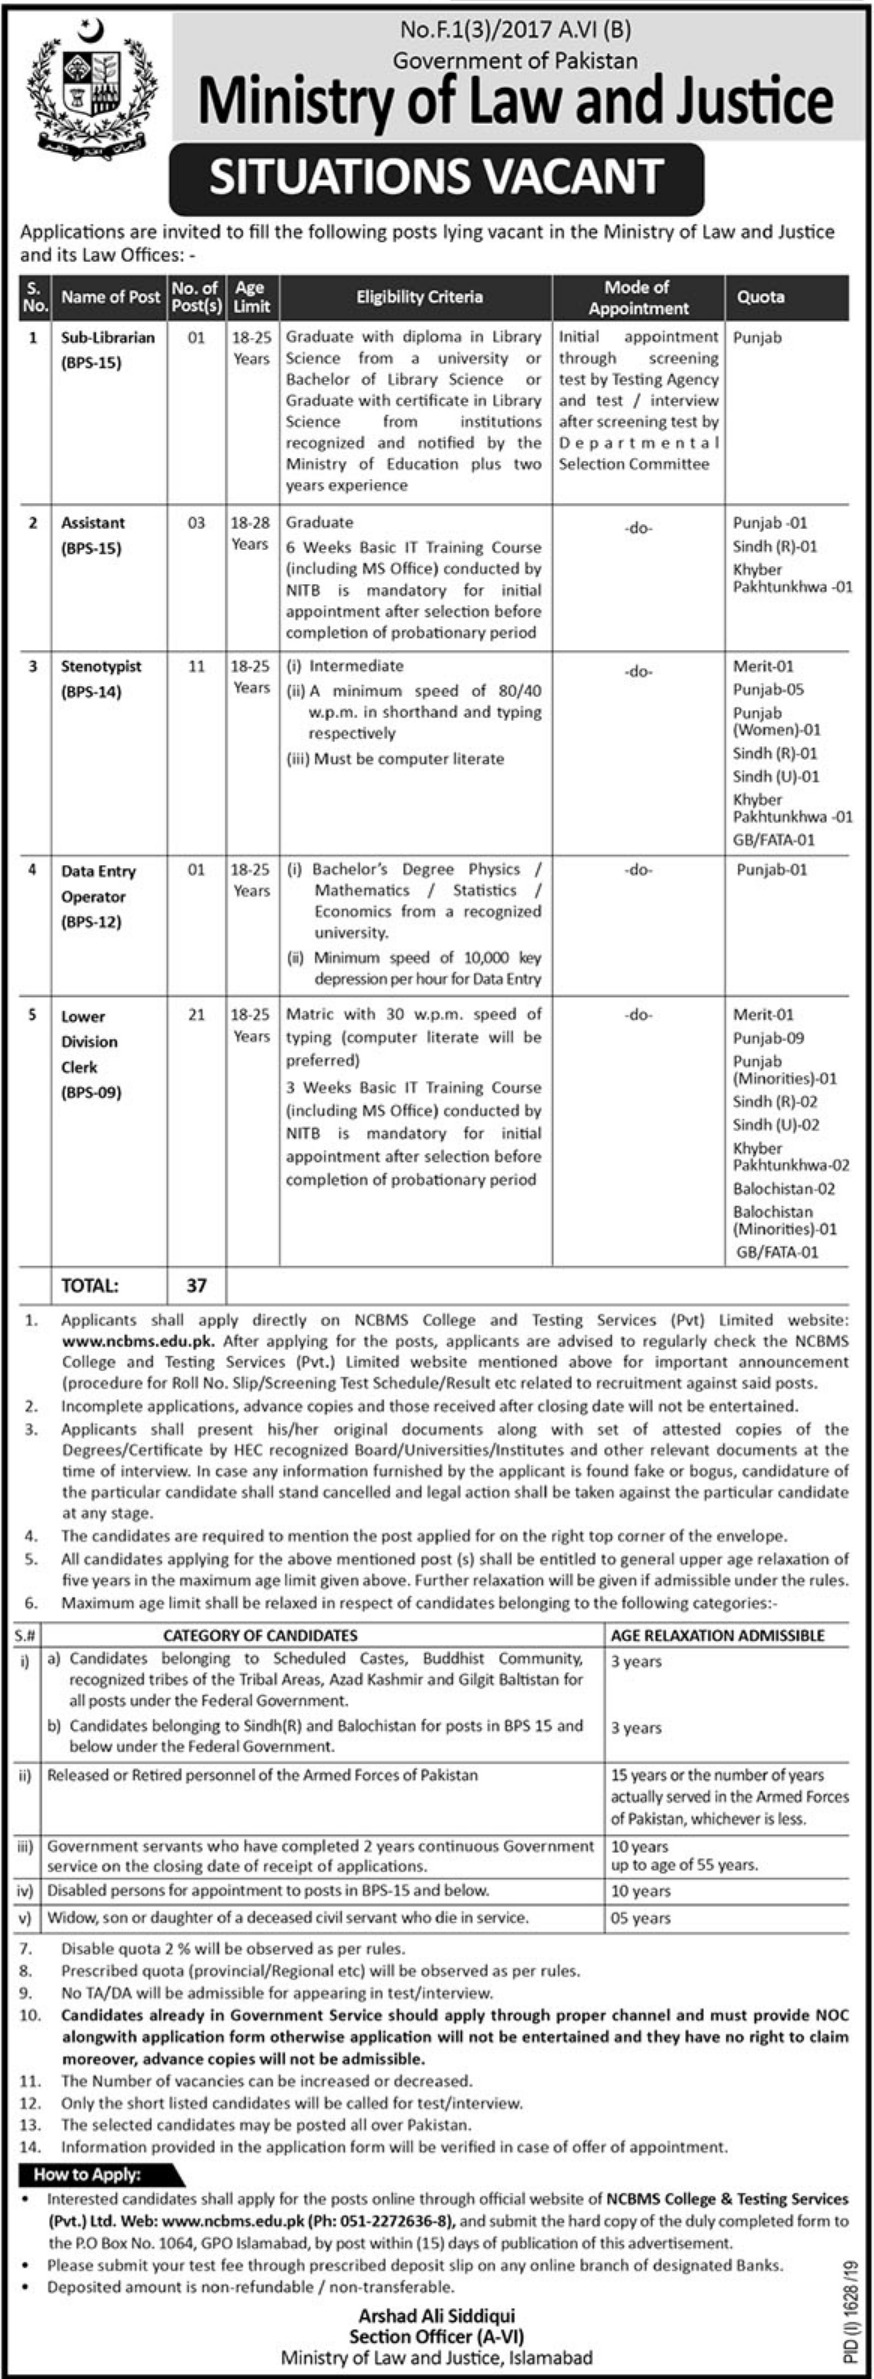 Ministry of Law & Justice Pakistan Jobs 2019